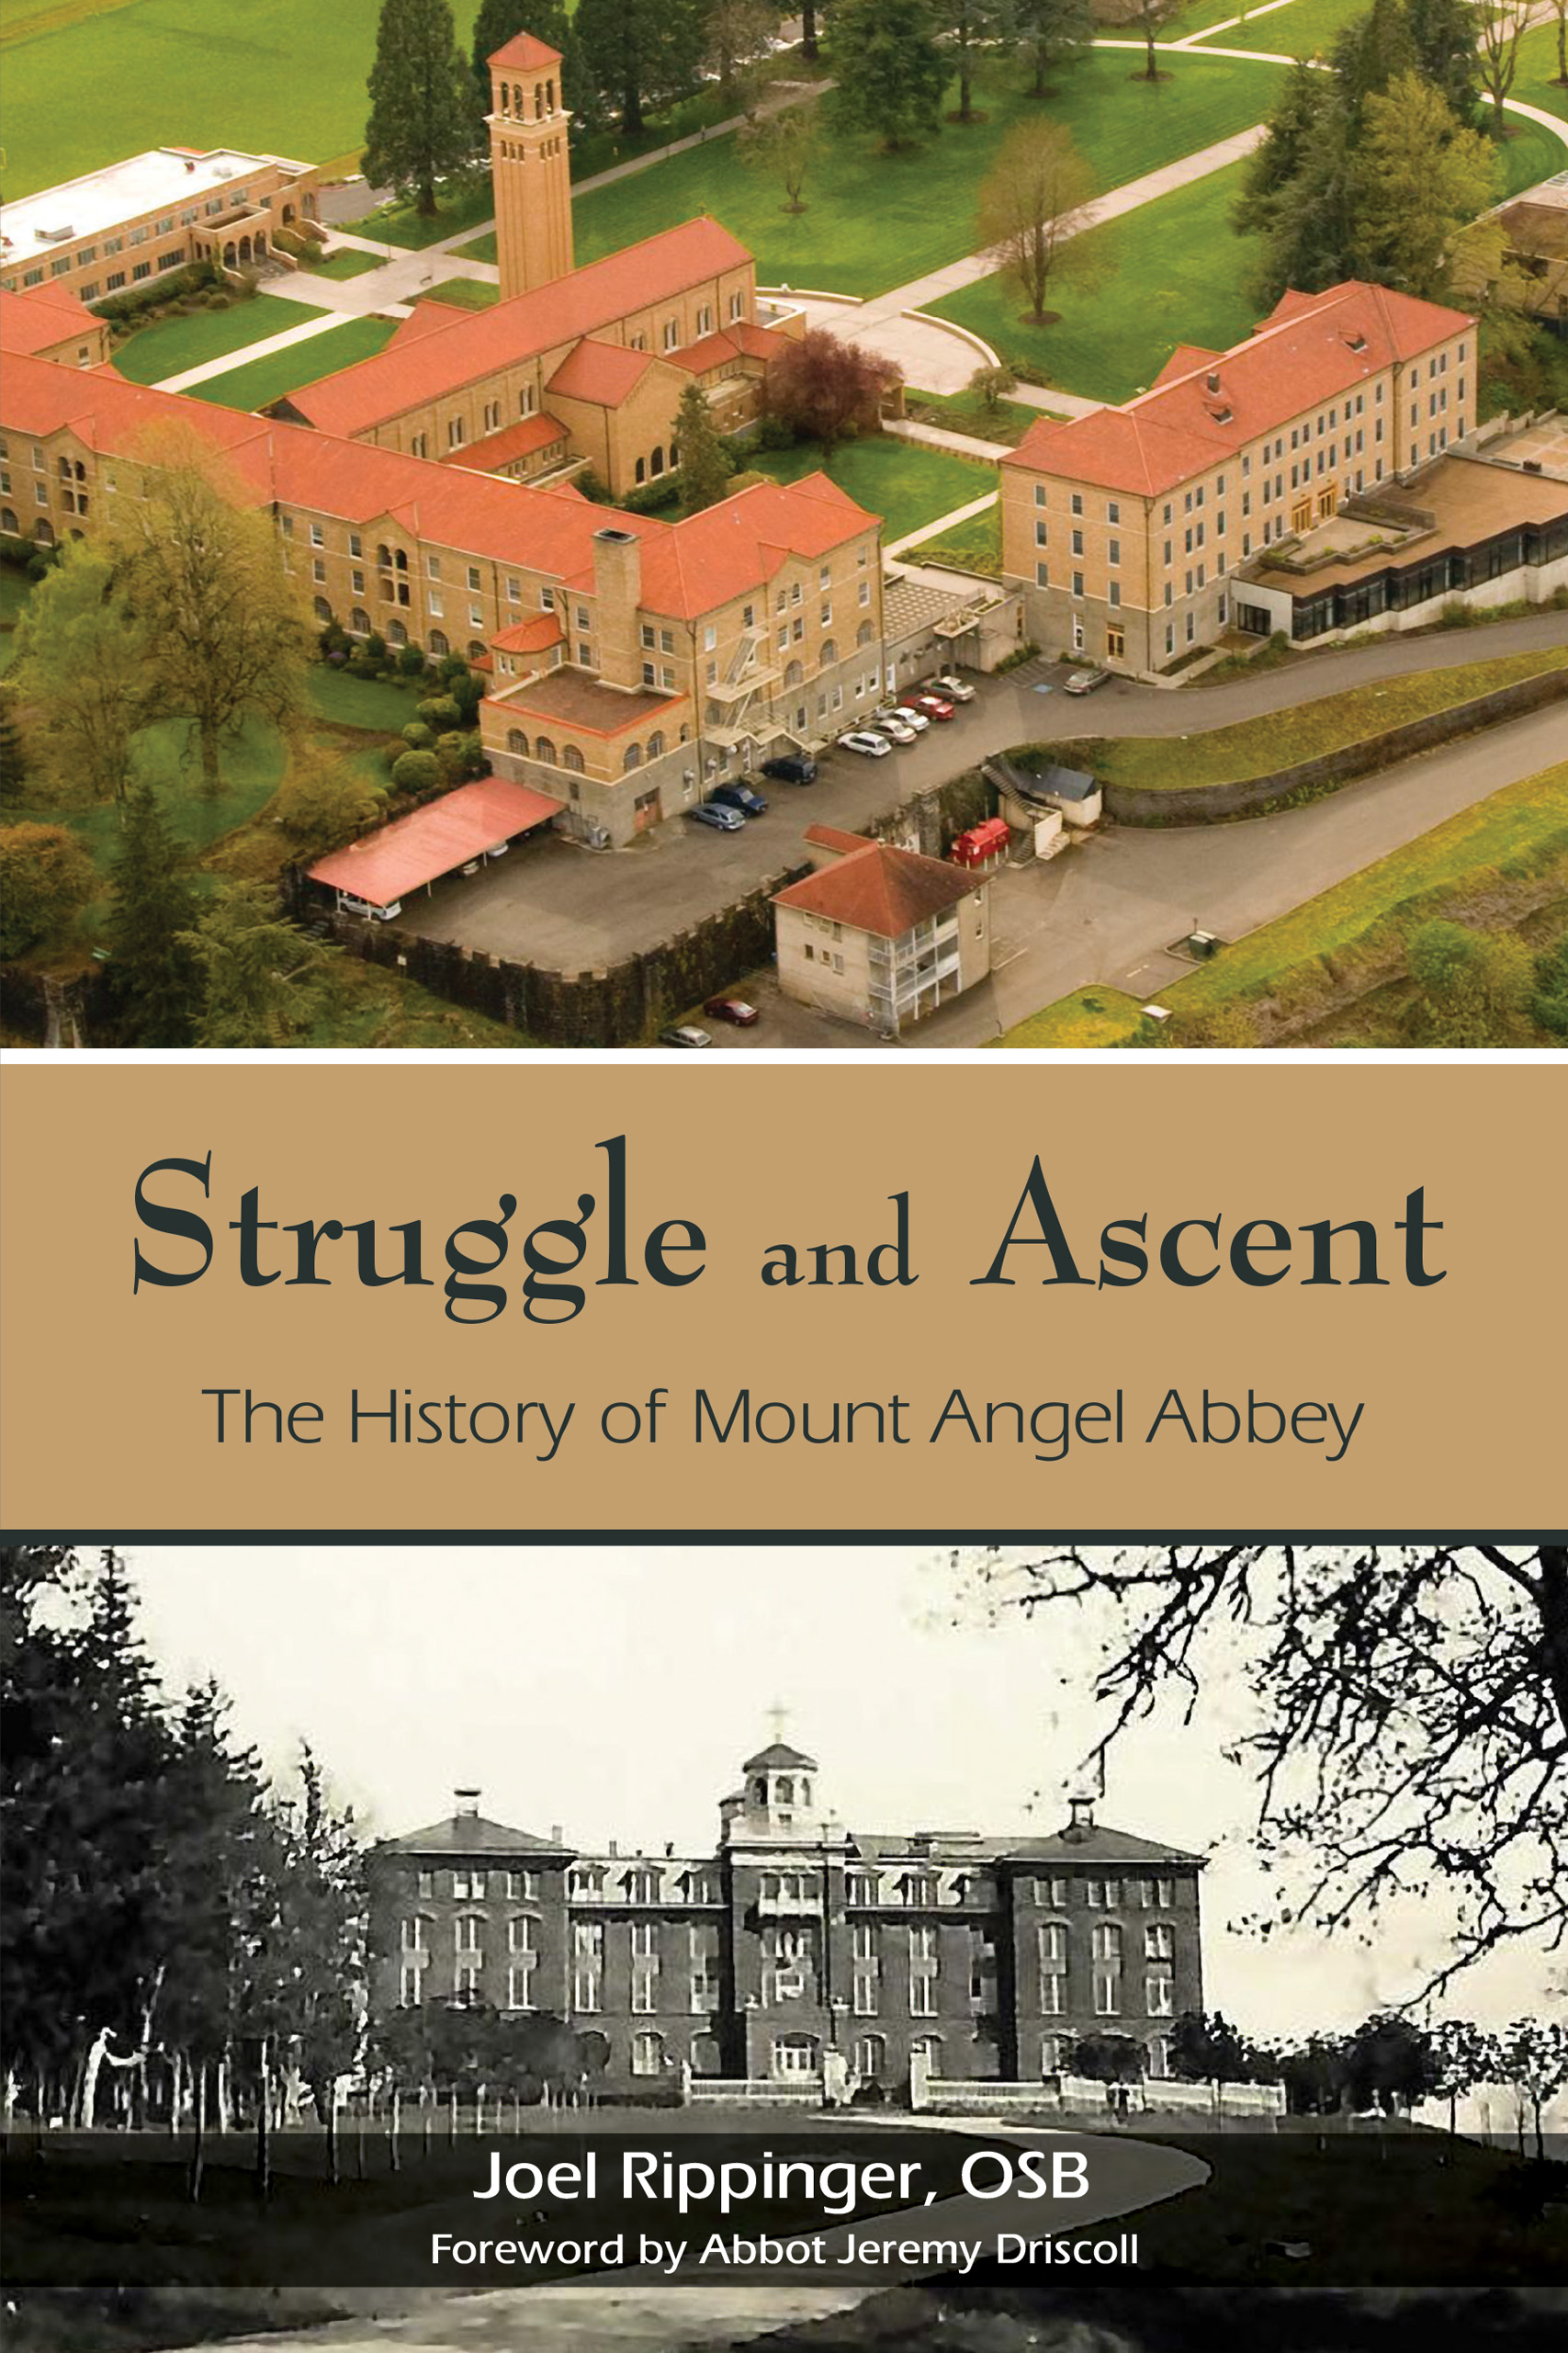 Struggle and Ascent by Joel Rippinger, O.S.B and introduction by Abbot Jeremy Driscoll, O.S.B.